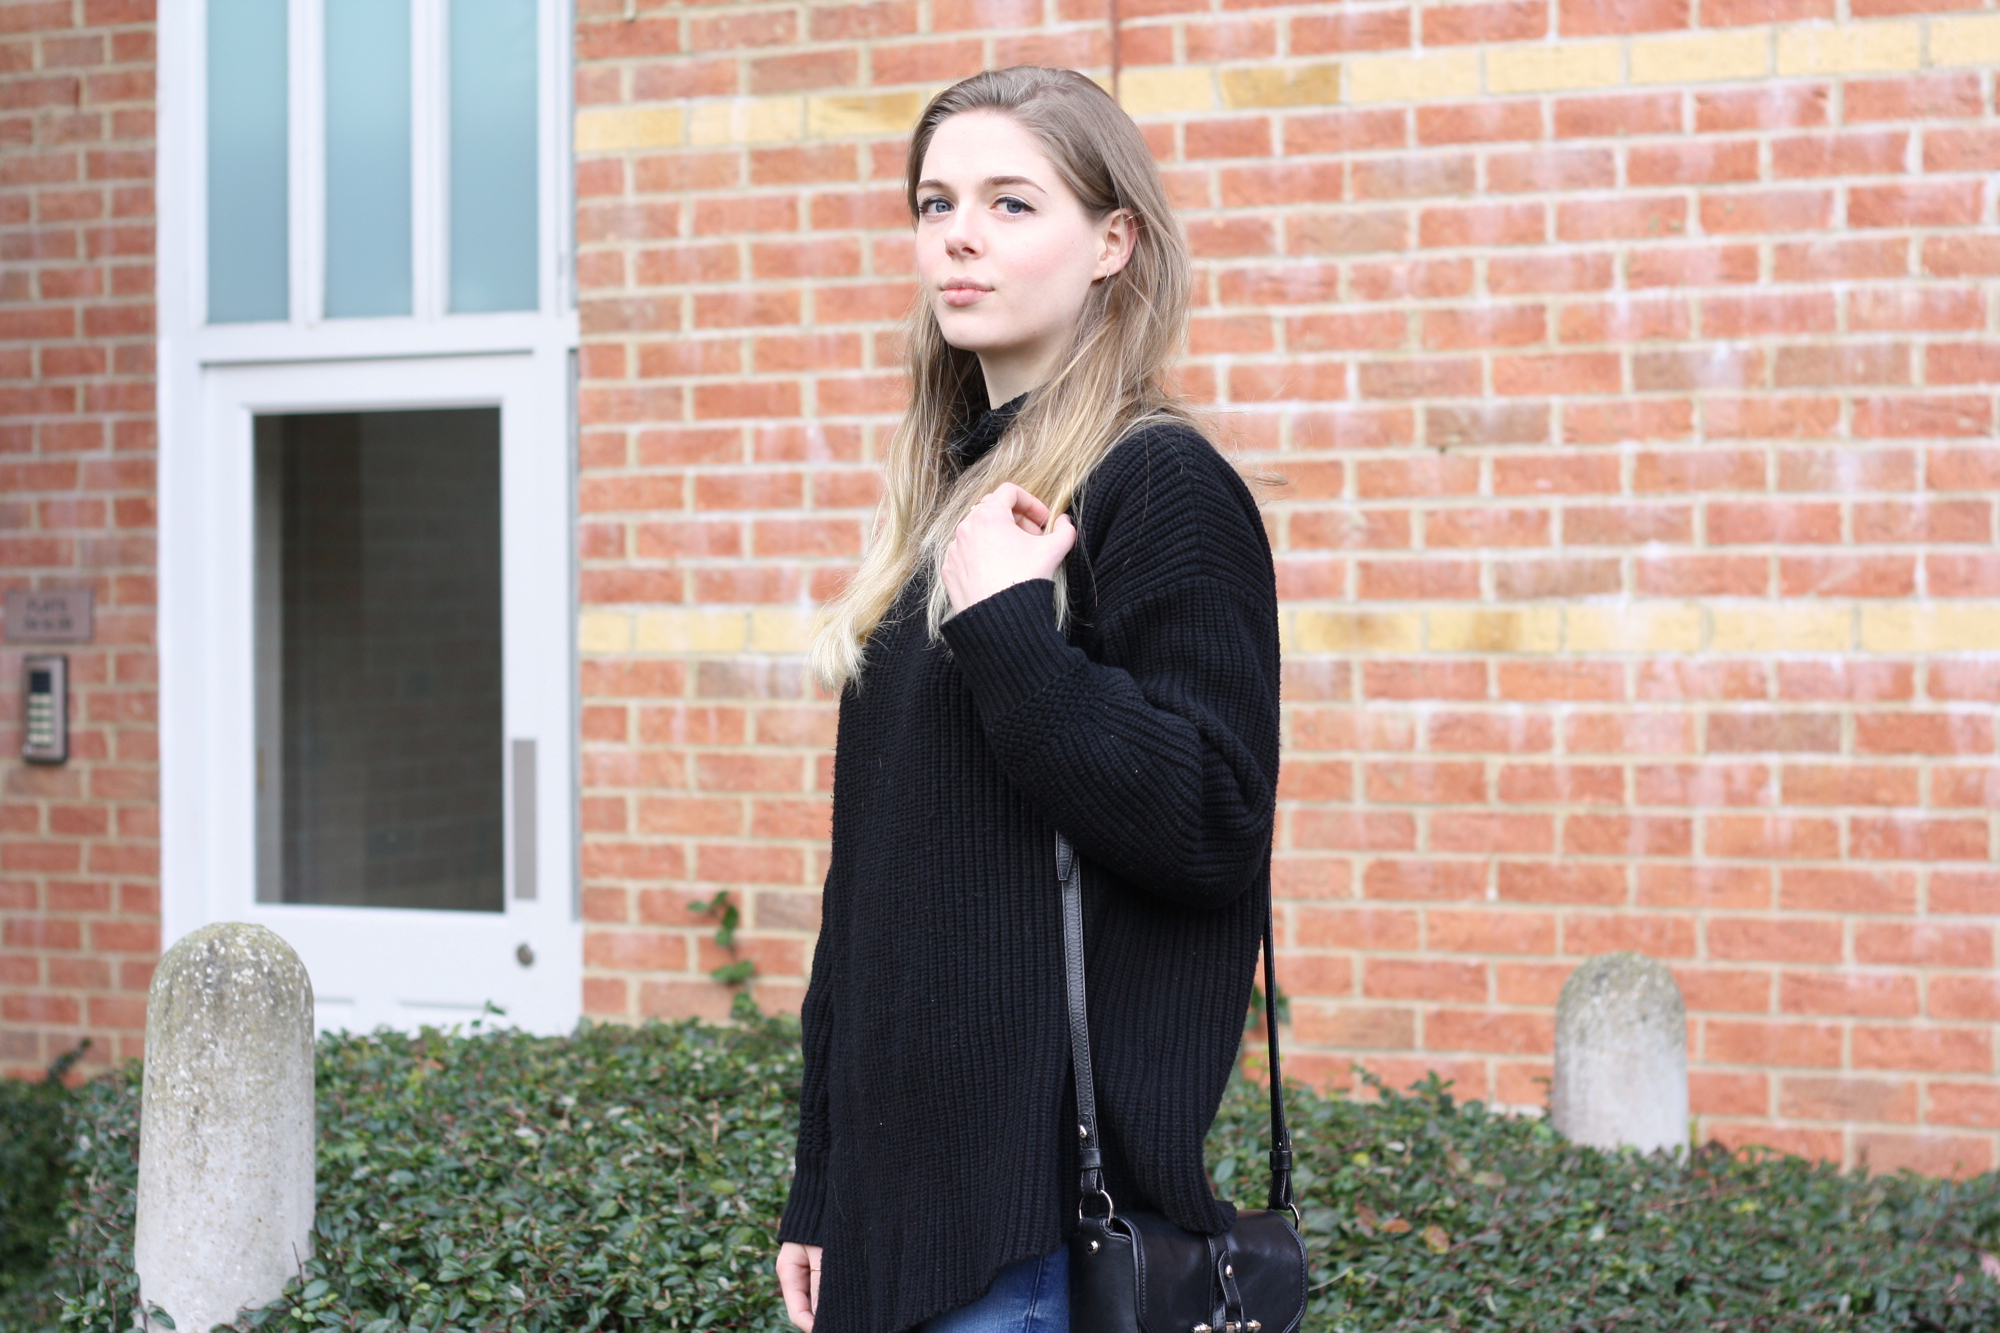 & Other Stories black turtleneck sweater